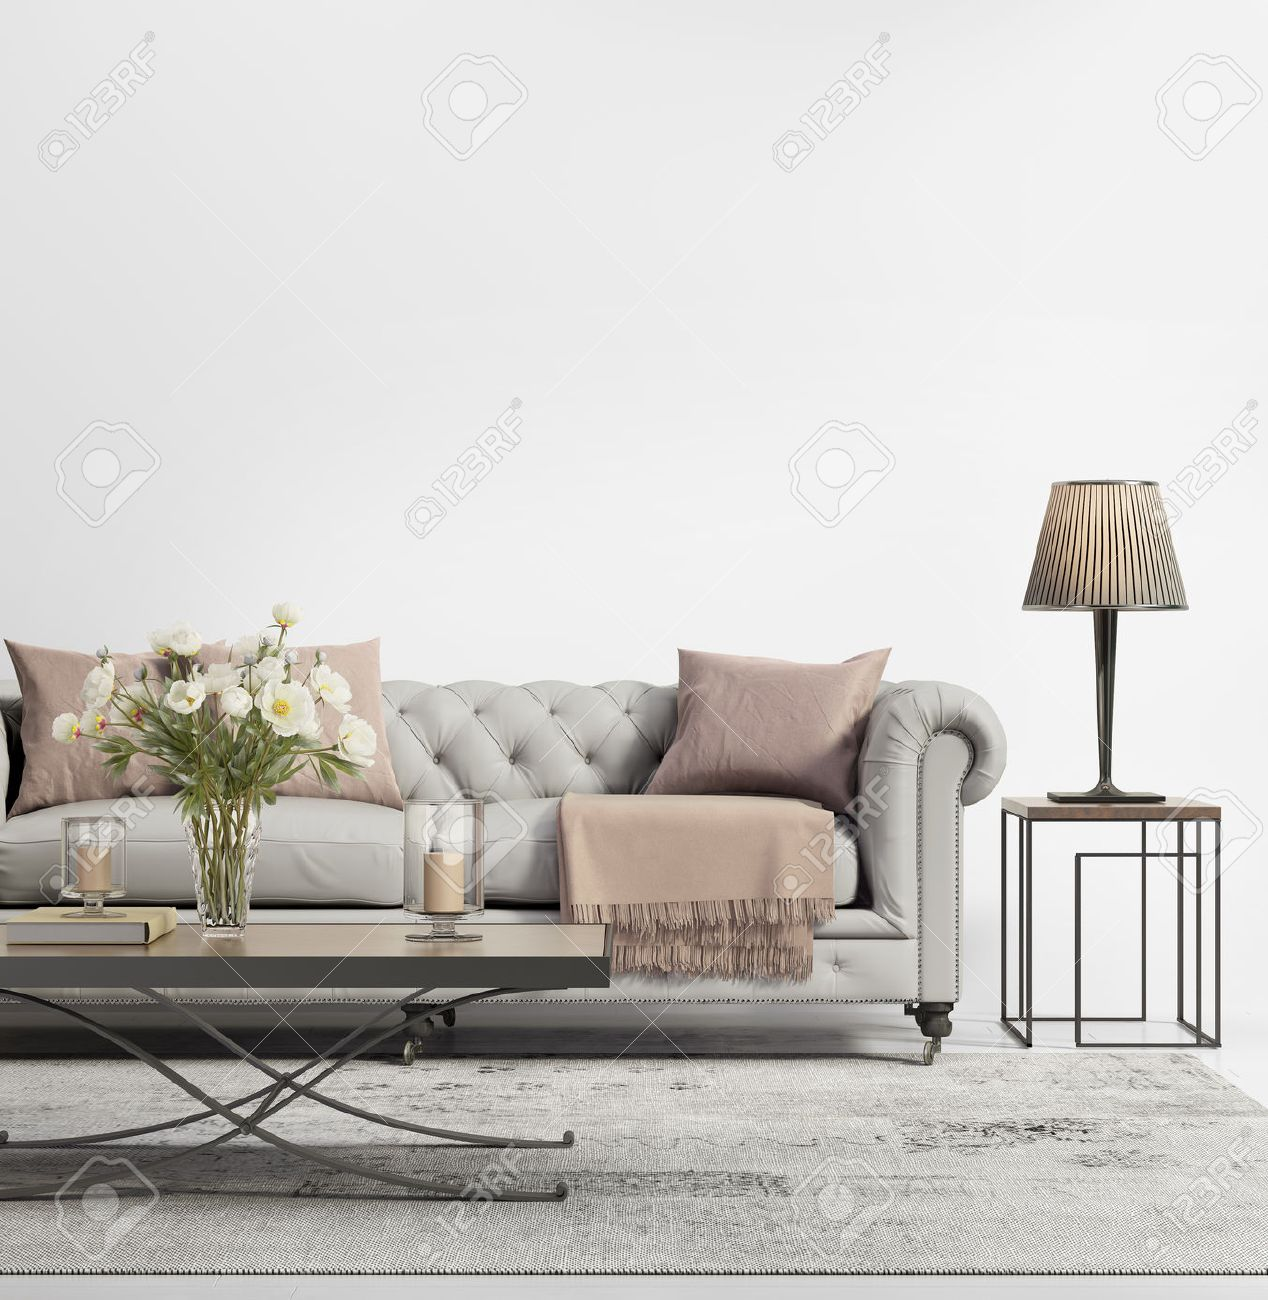 Contemporary Elegant Chic Living Room With Grey Tufted Sofa Stock ...